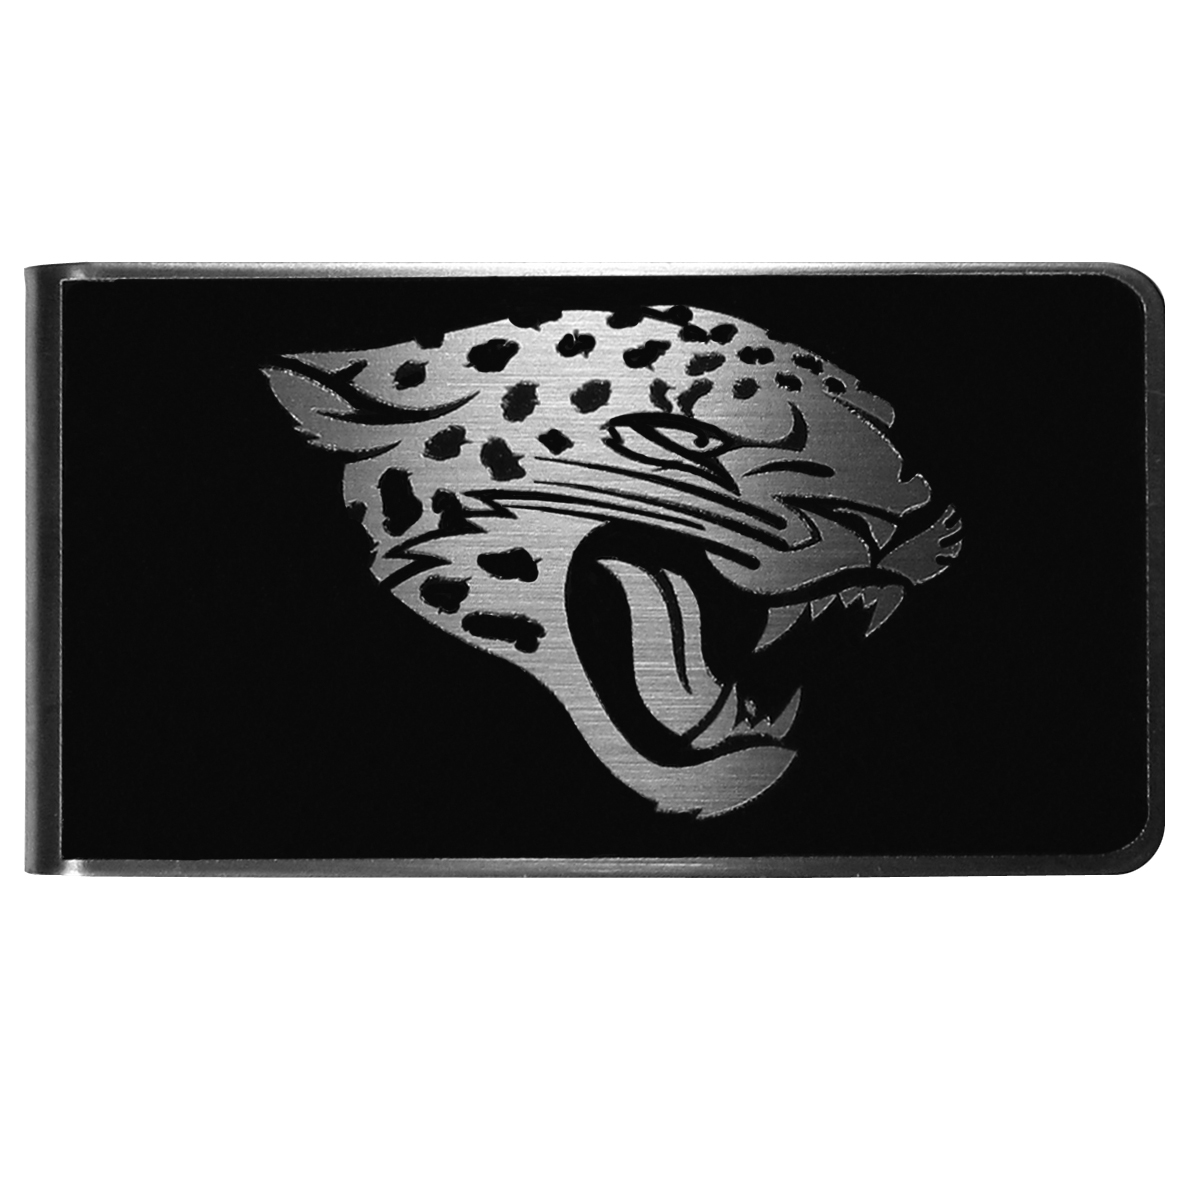 Jacksonville Jaguars Black and Steel Money Clip - Our monochromatic steel money clips have a classic style and superior quality. The strong, steel clip has a black overlay of the Jacksonville Jaguars logo over the brushed metal finish creating a stylish men's fashion accessory that would make any fan proud.